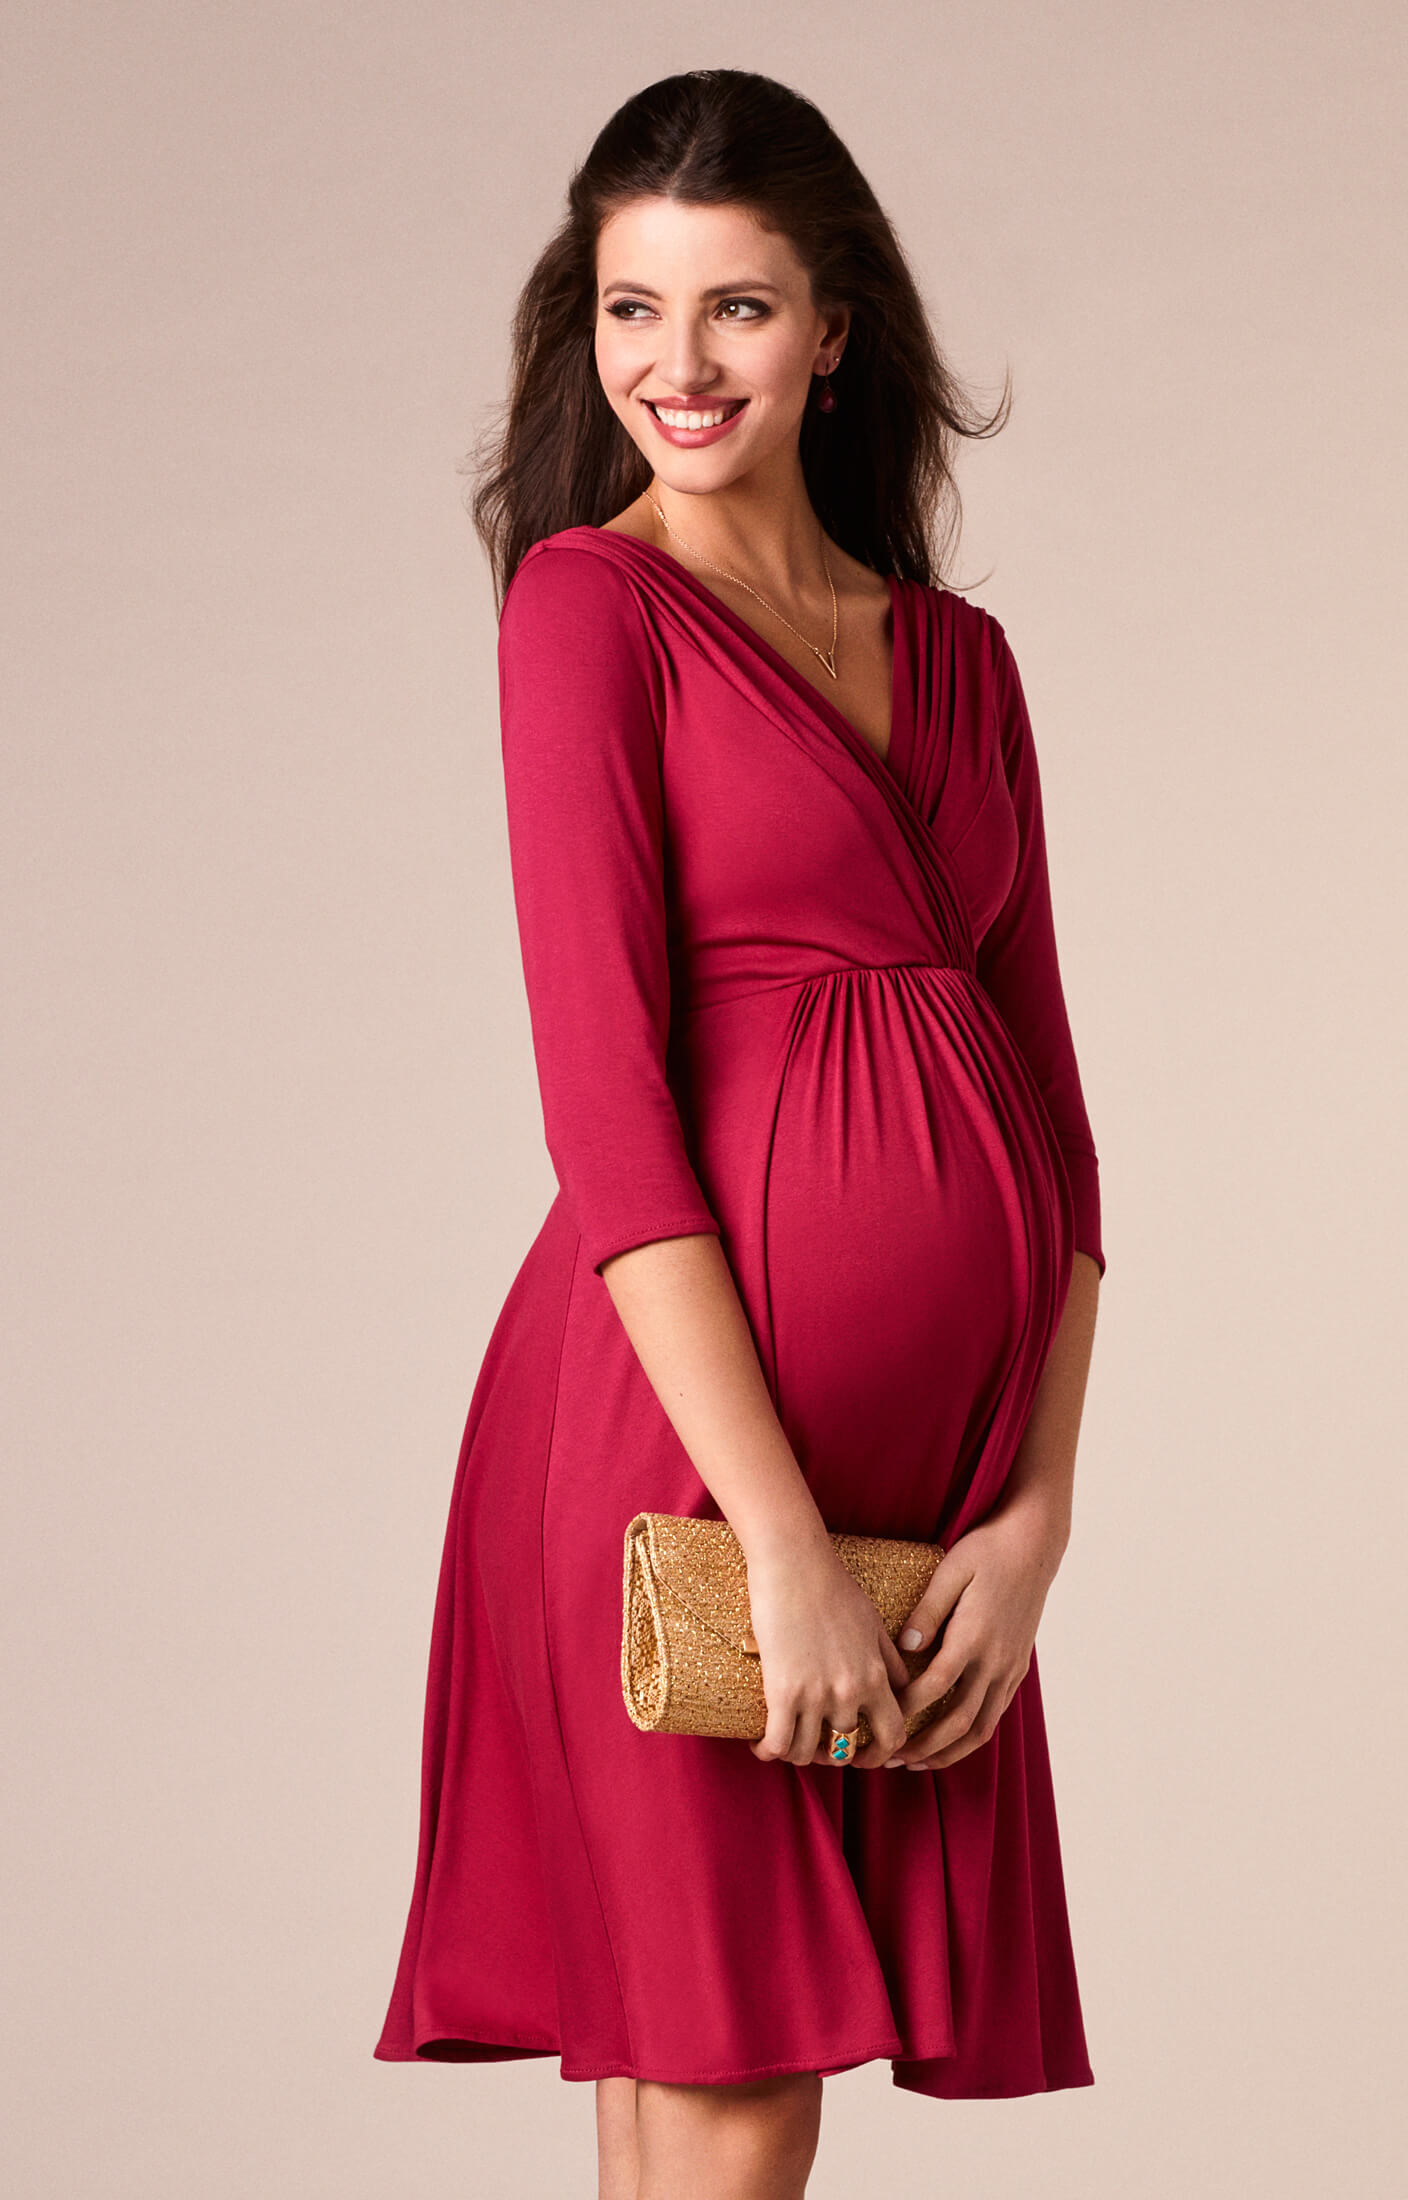 Stylish Maternity Clothing. Spring is now upon us as we begin to enter a period where being pregnant is an even more exciting and enjoyable period as it combines with the warmer seasons.